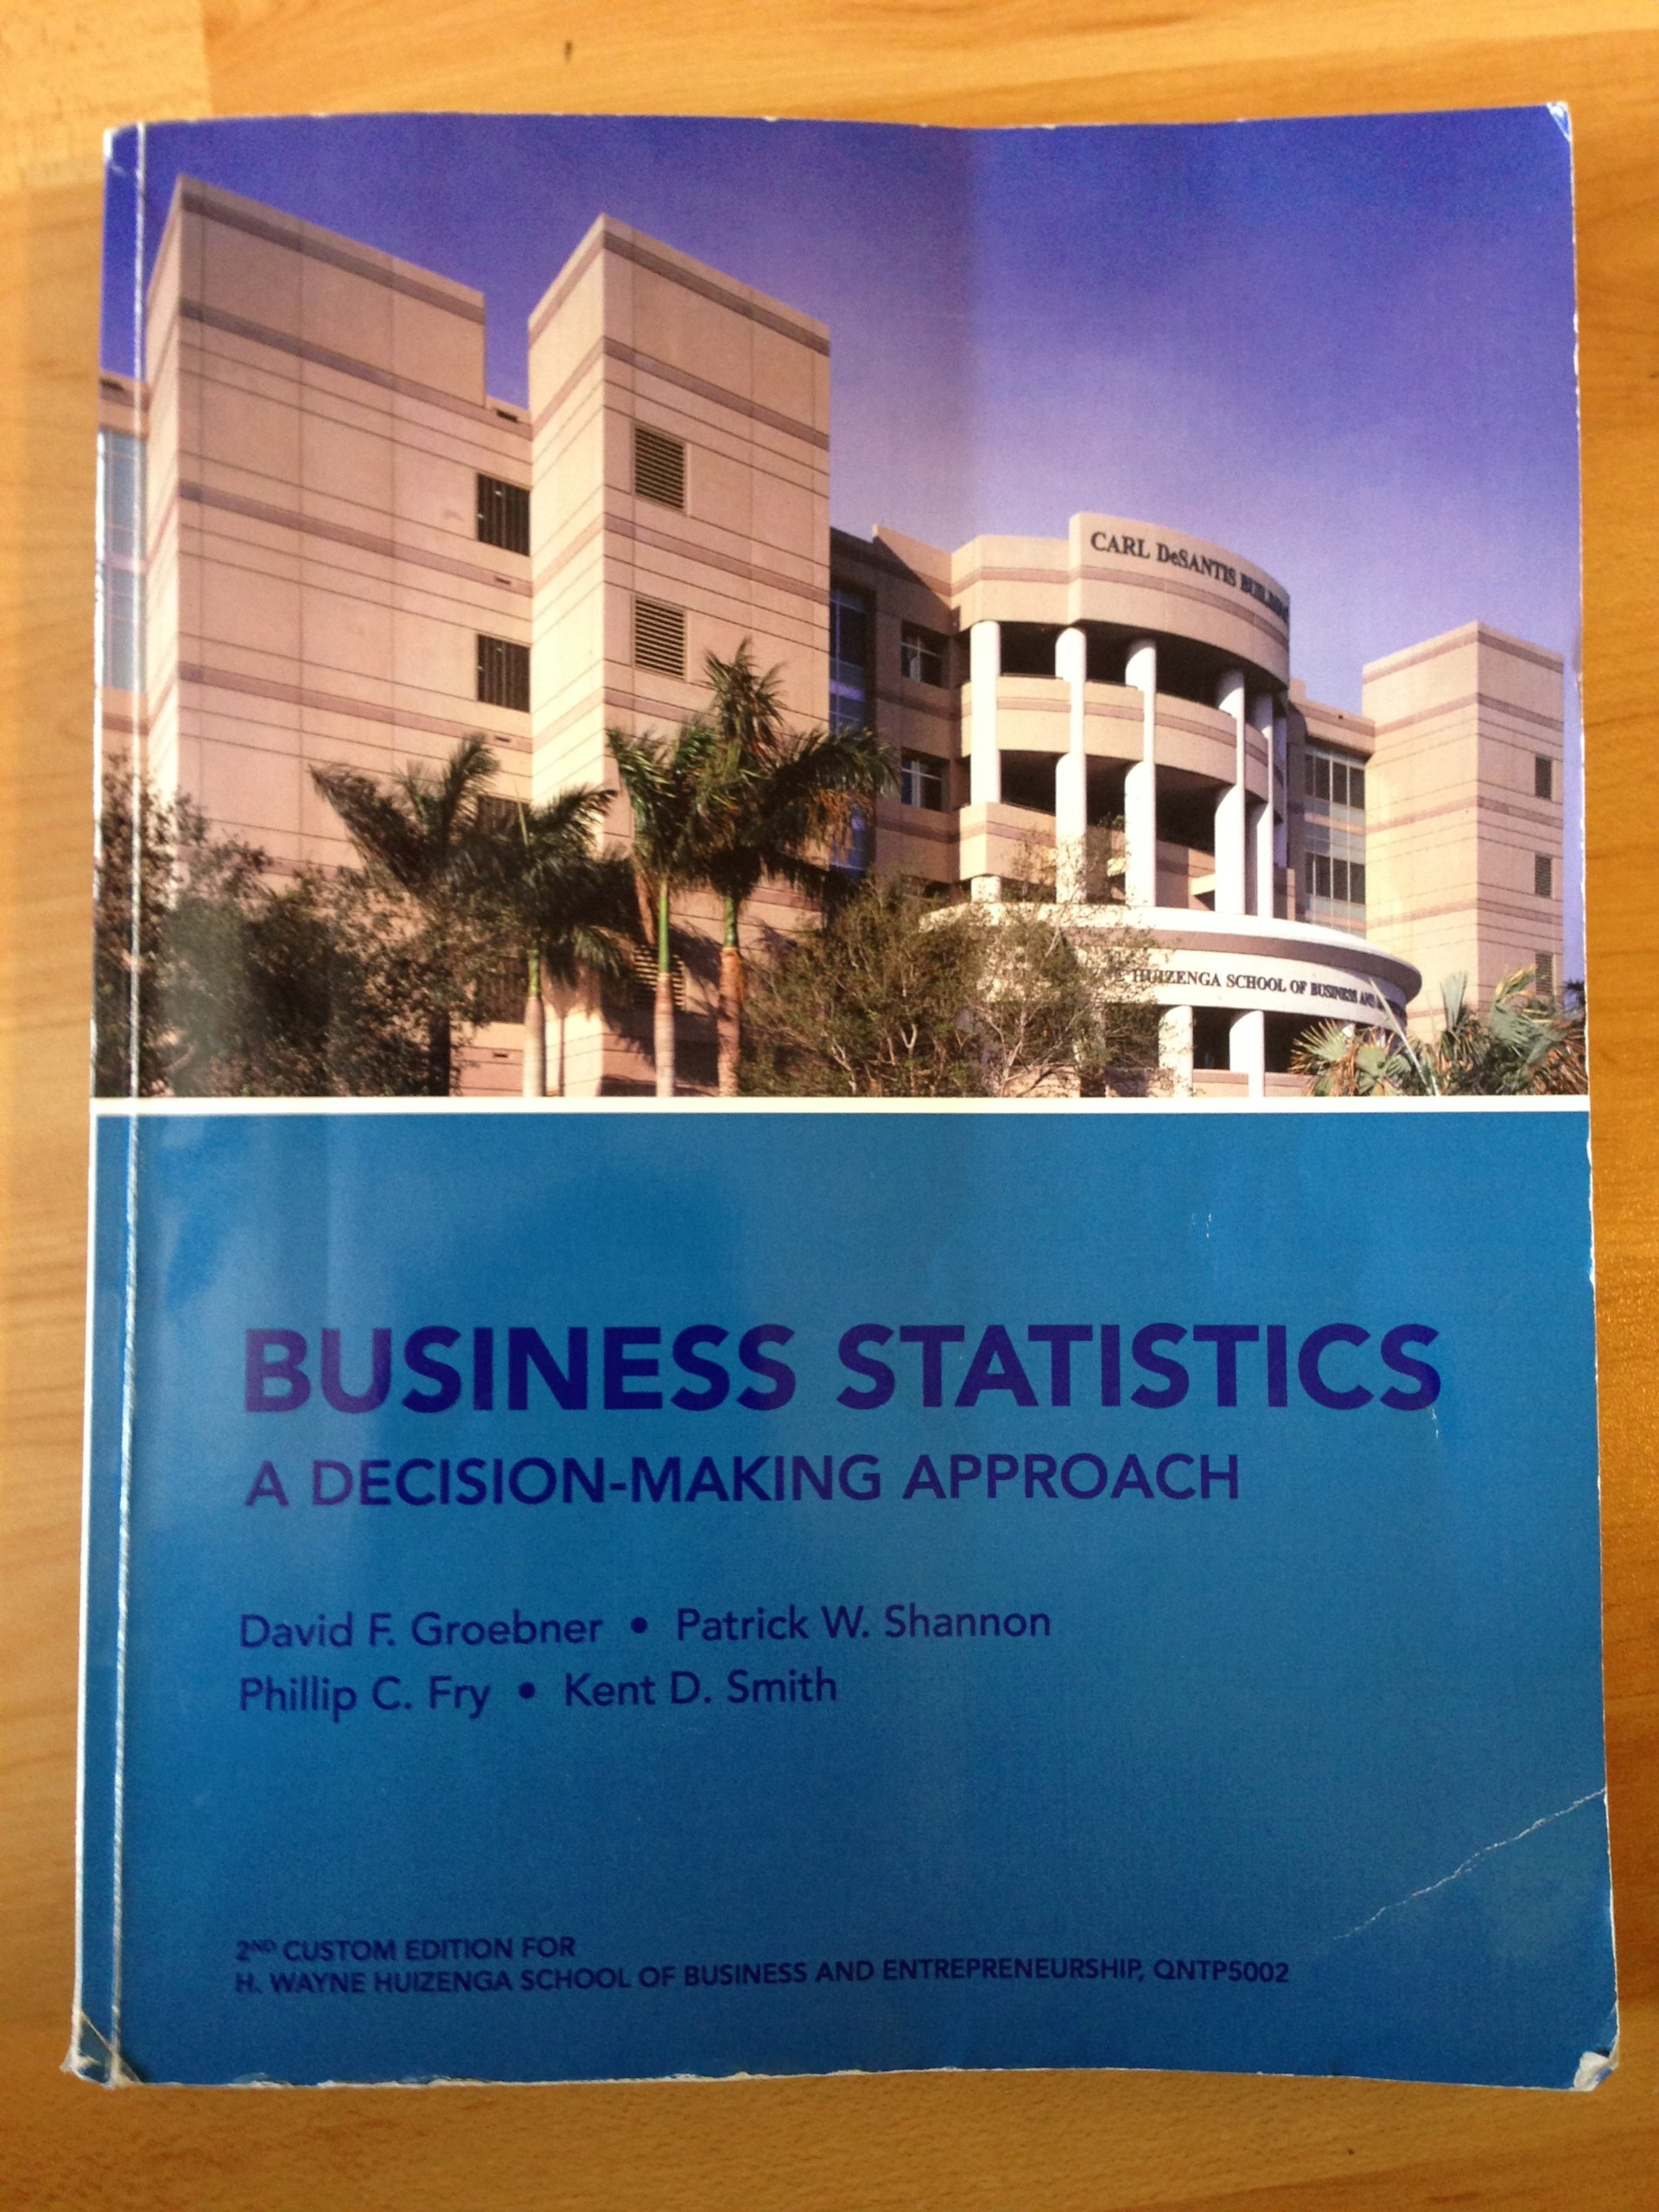 Business statistics a decision making approach david f groebner business statistics a decision making approach david f groebner patrick w shannon phillip c fry kent d smith 9780558665630 amazon books fandeluxe Images